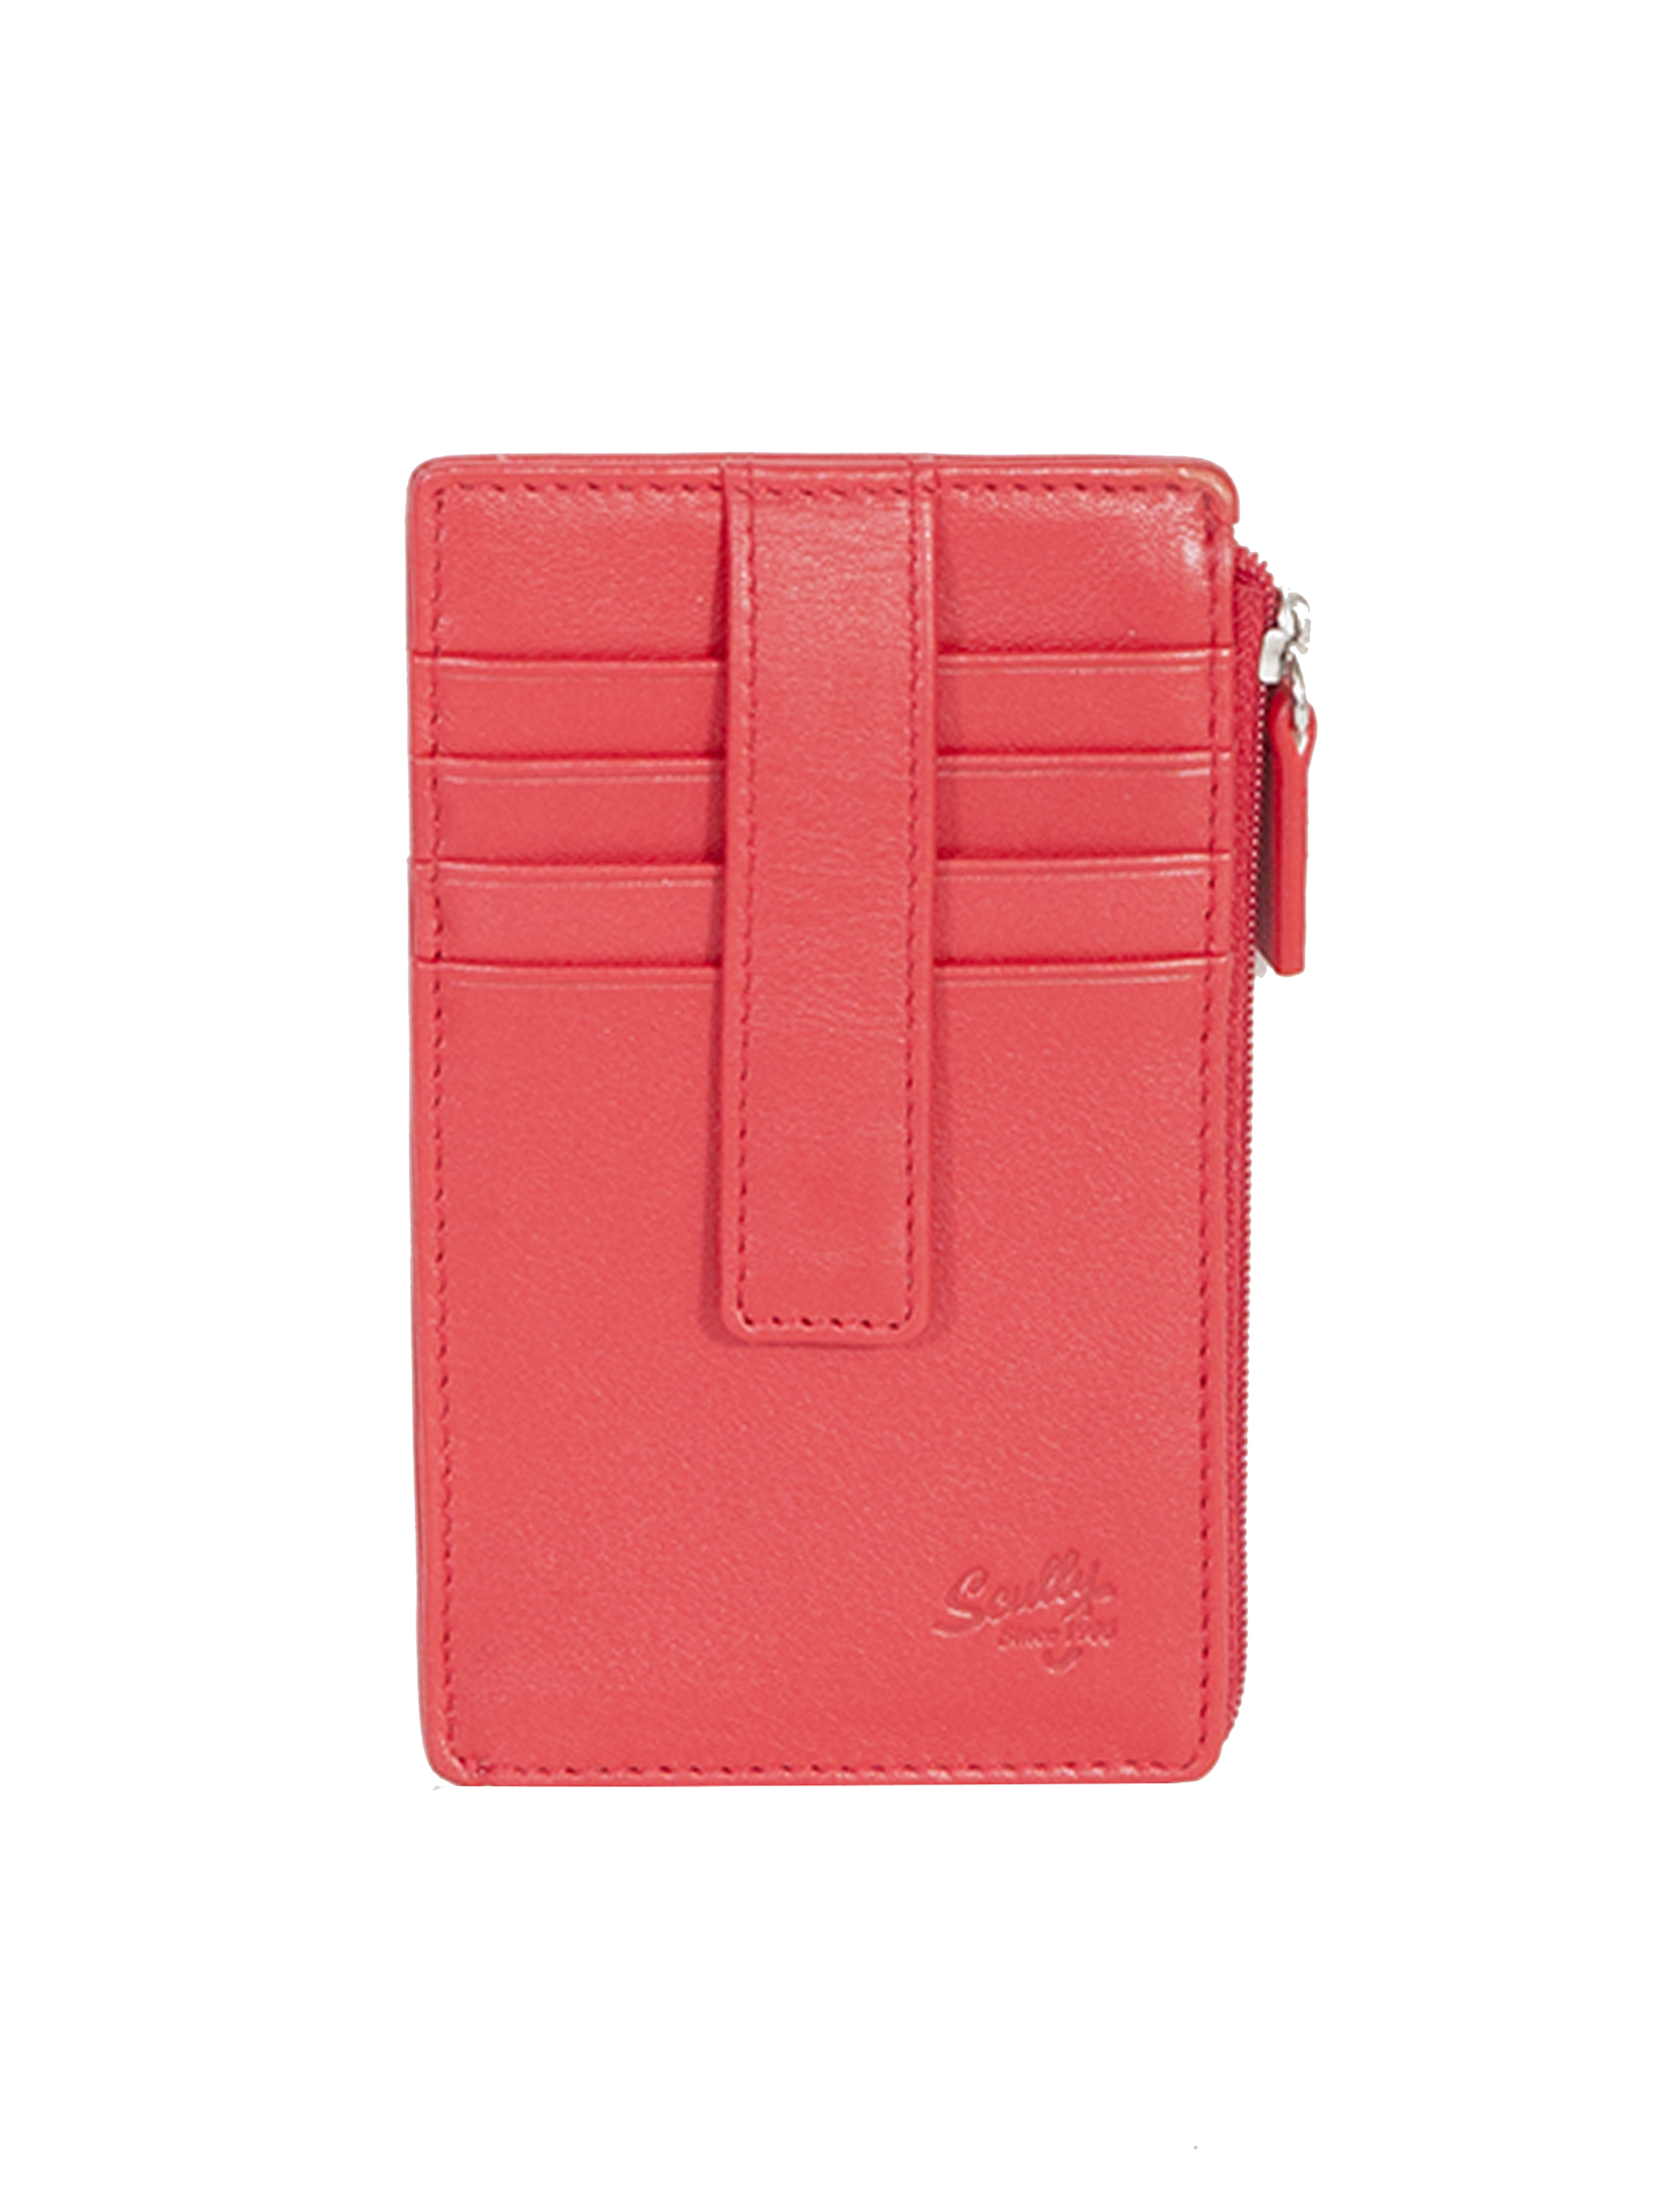 Ladies leather tab card holder and zip pouch